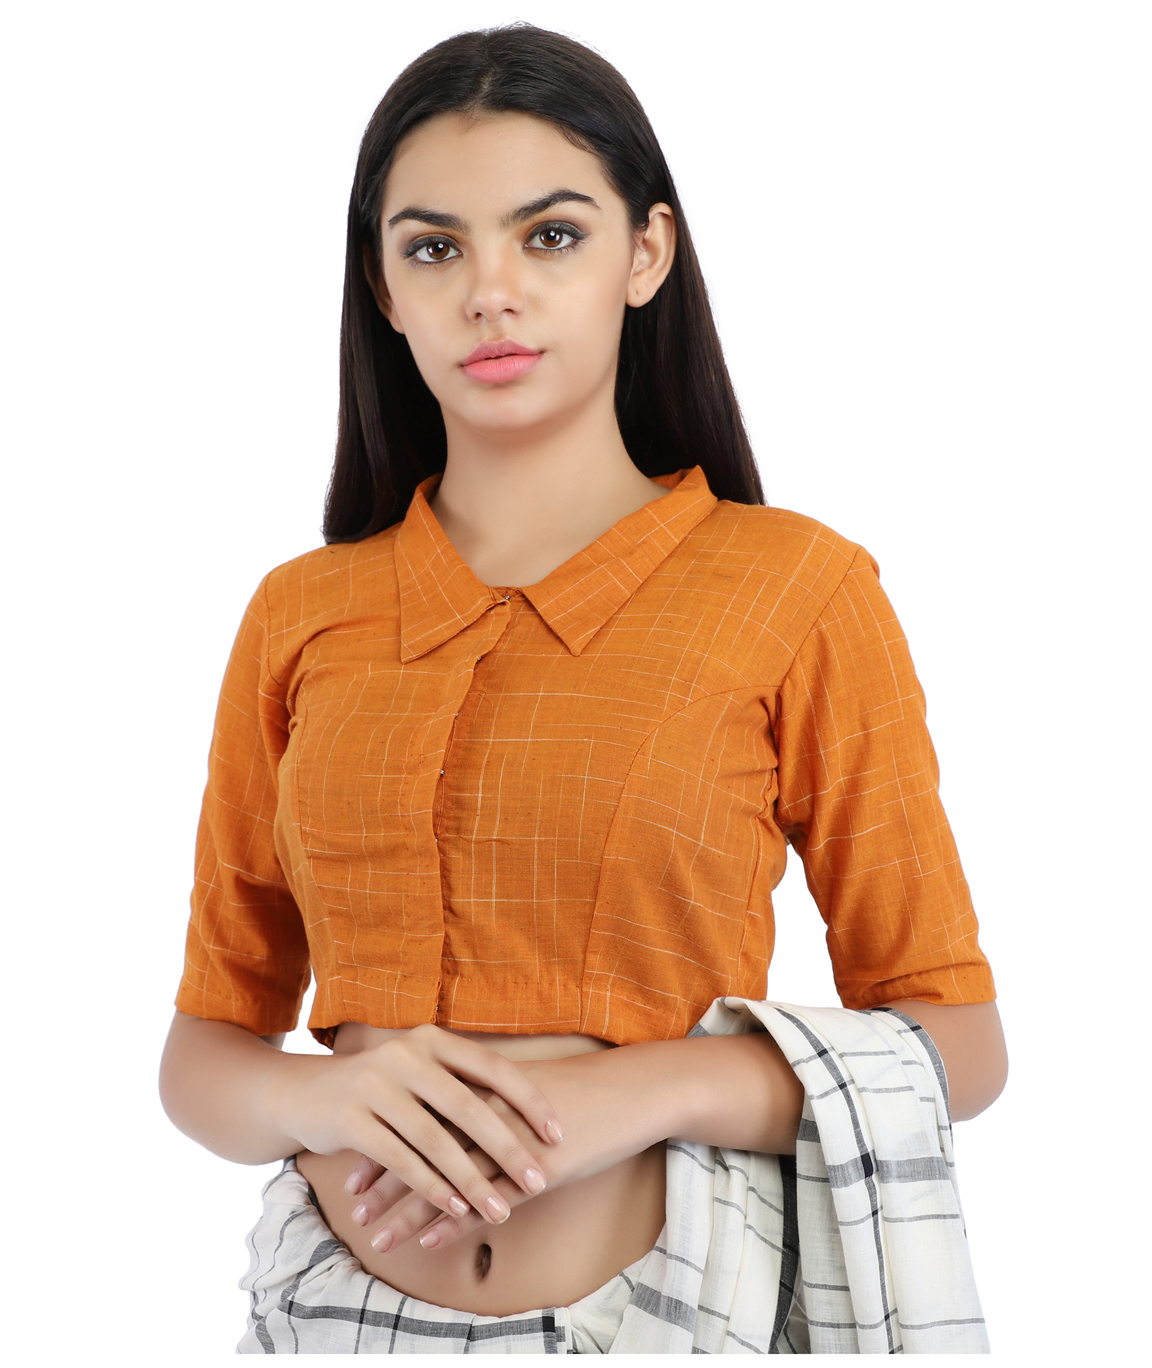 Mustard Yellow Pure Cotton Handloom Front-Open Blouse With Collared Neckline (COLOUR : MUSTARD YELLOW)